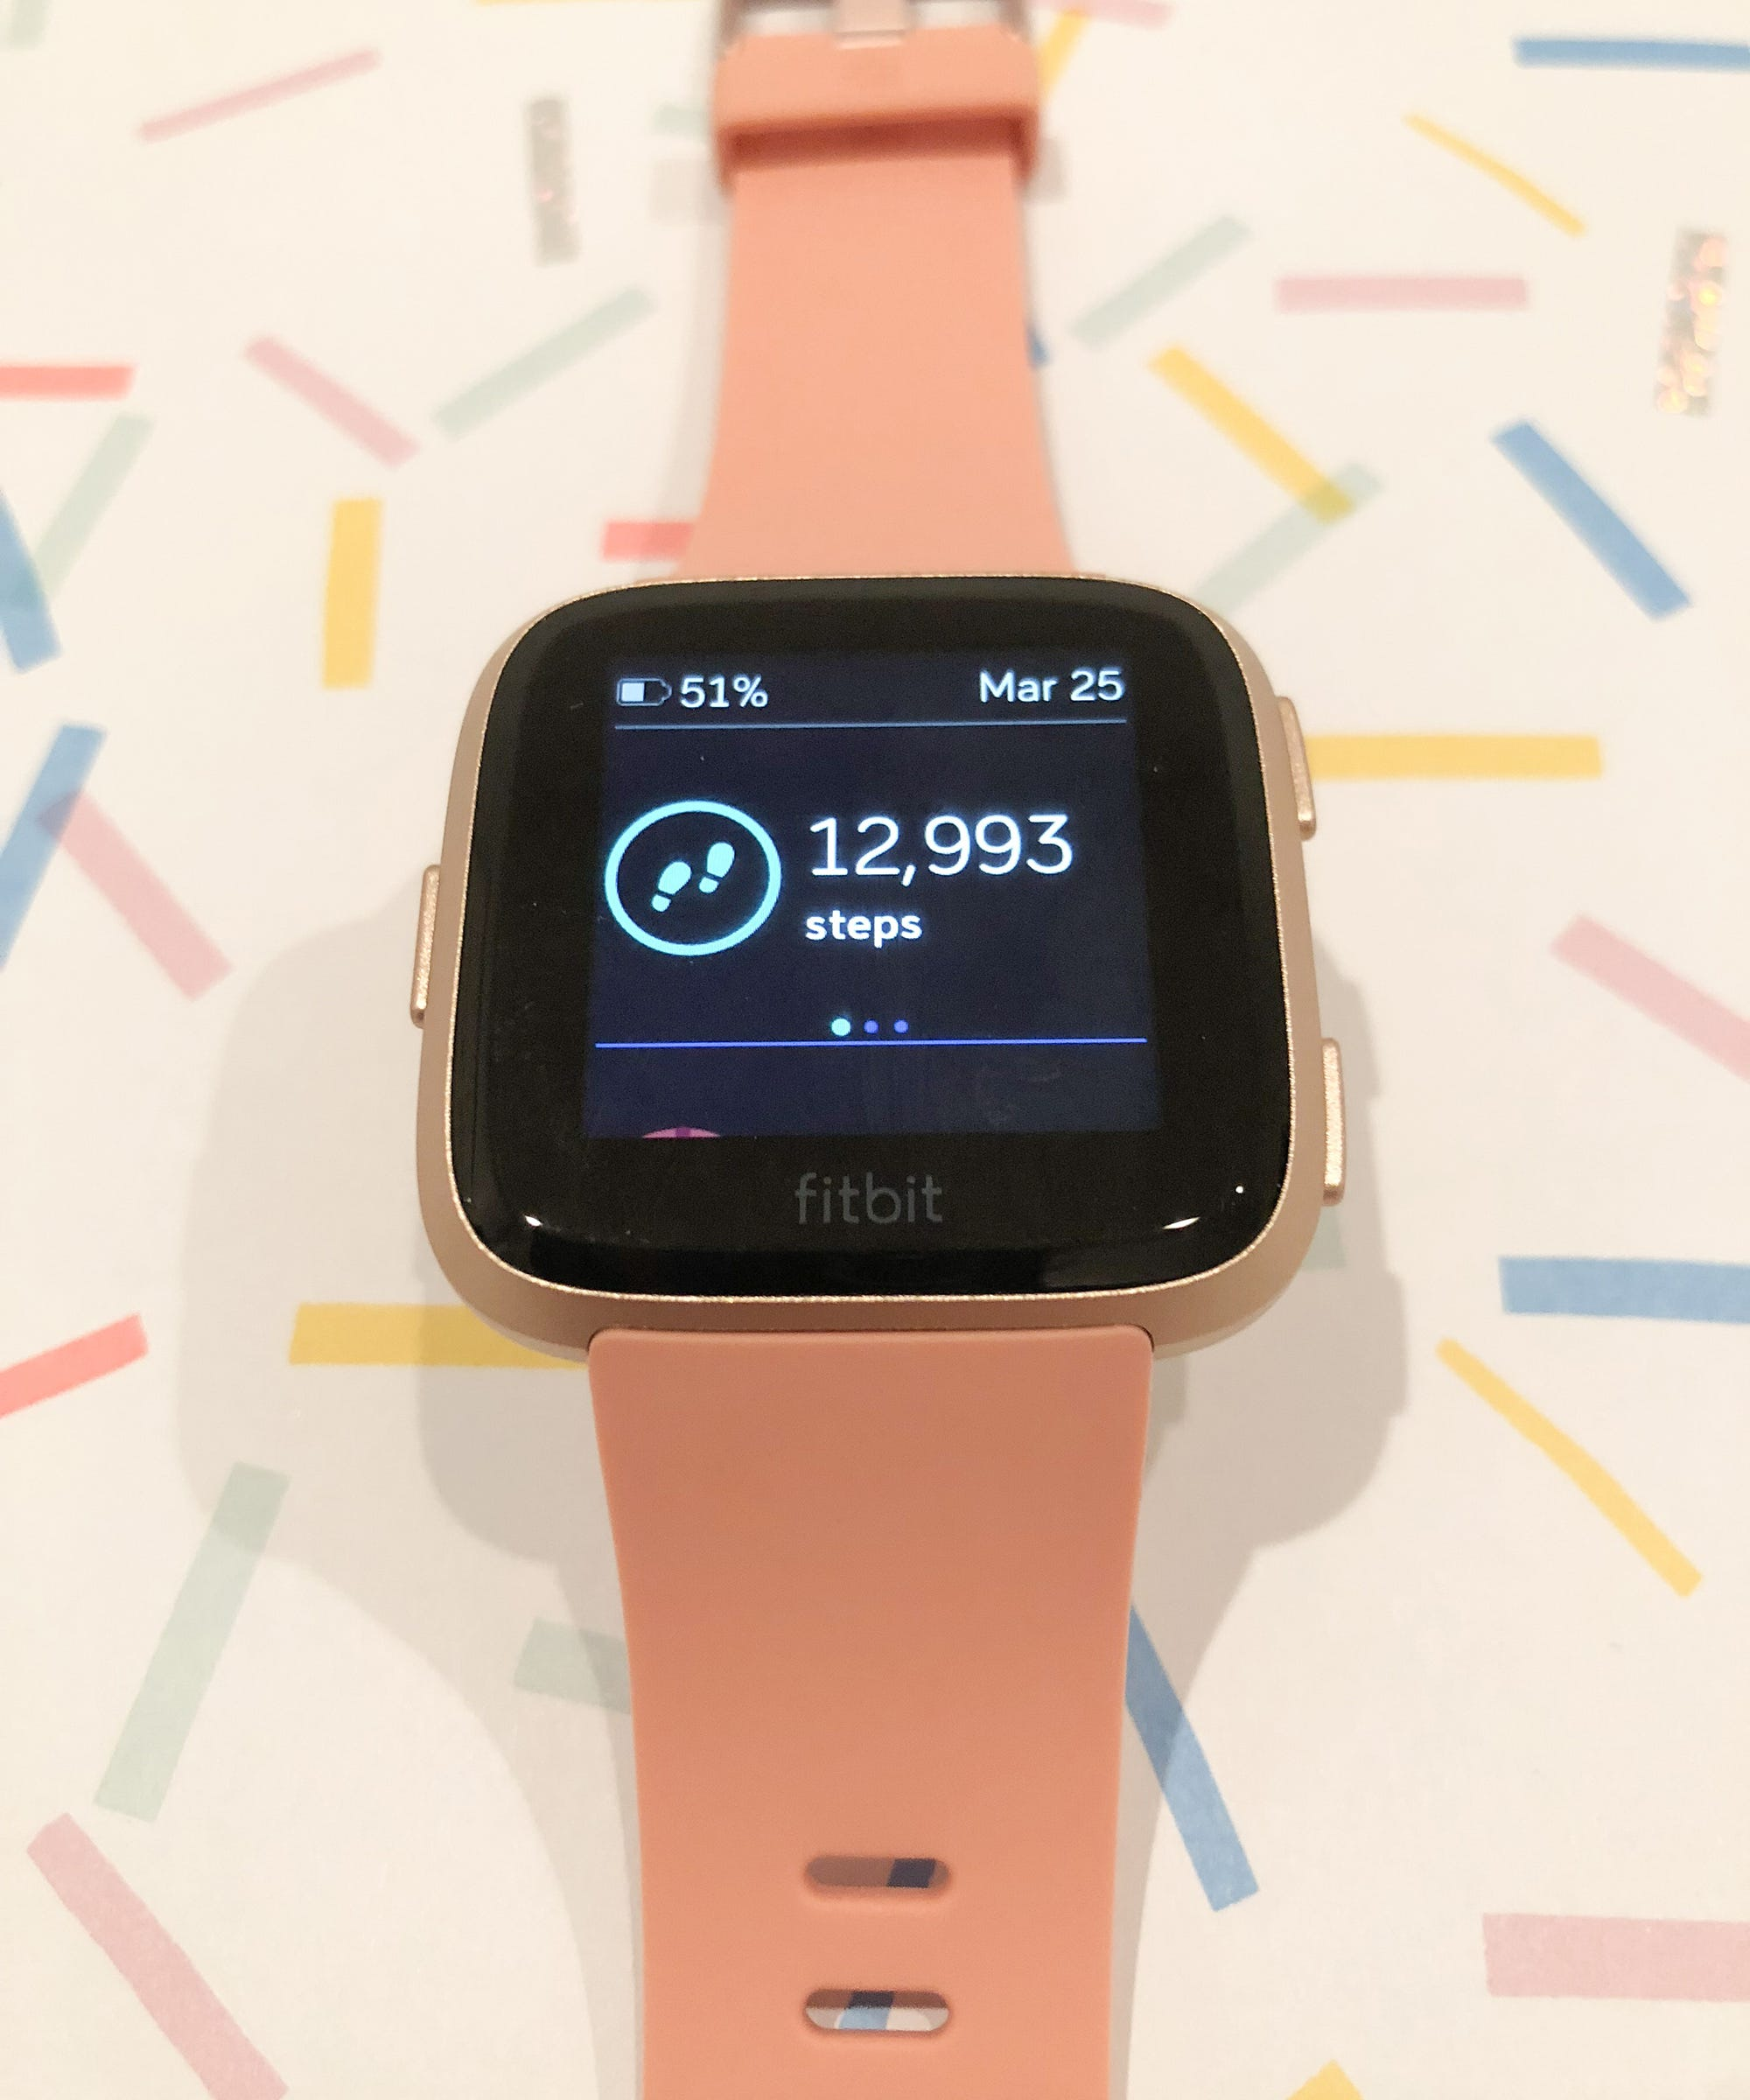 Should You Buy The Fitbit Versa Or Apple Watch Series 3